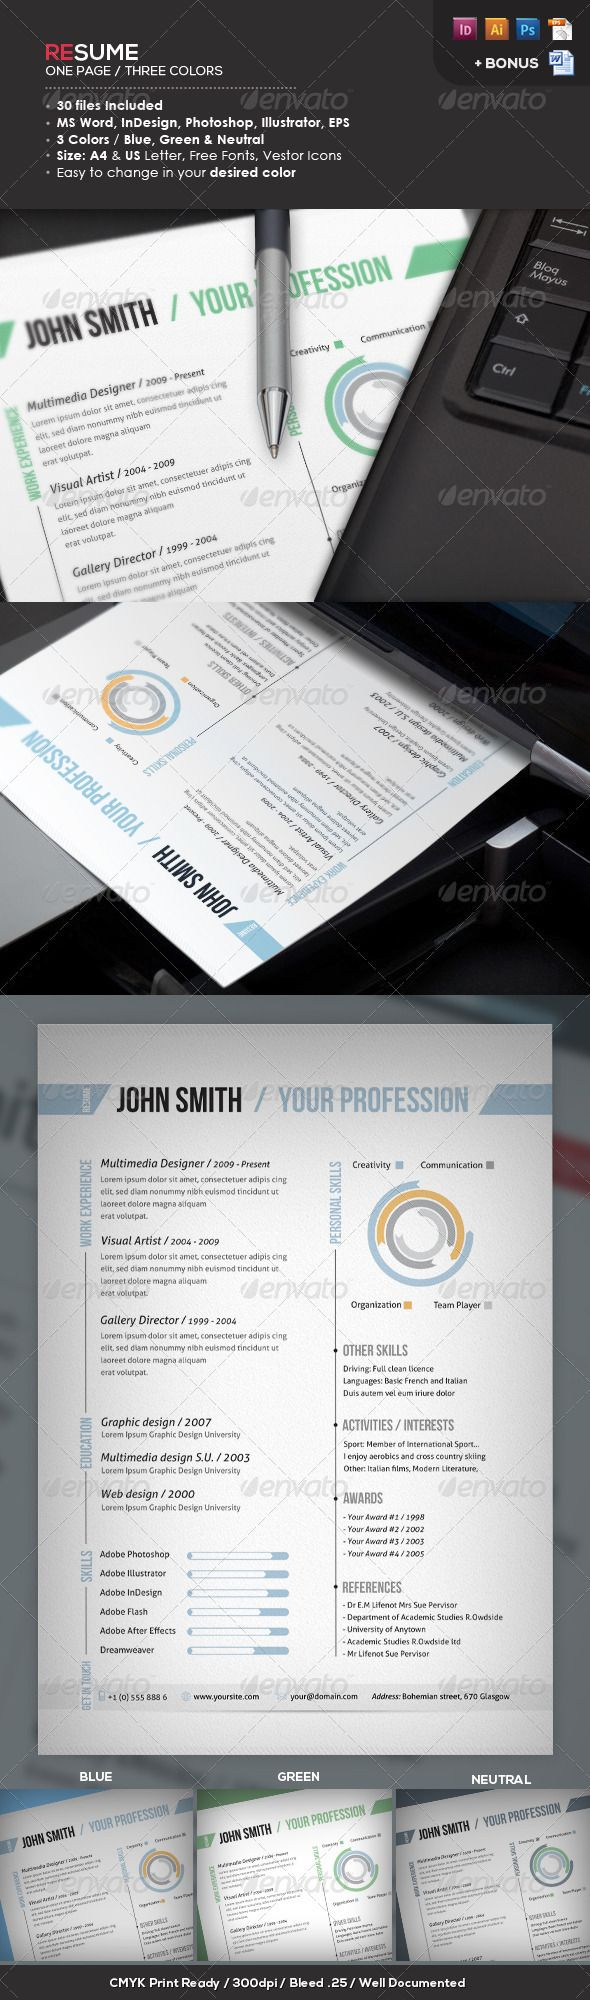 Ready One Page Resume  Cv  Resume Cv Cv Template And Fonts